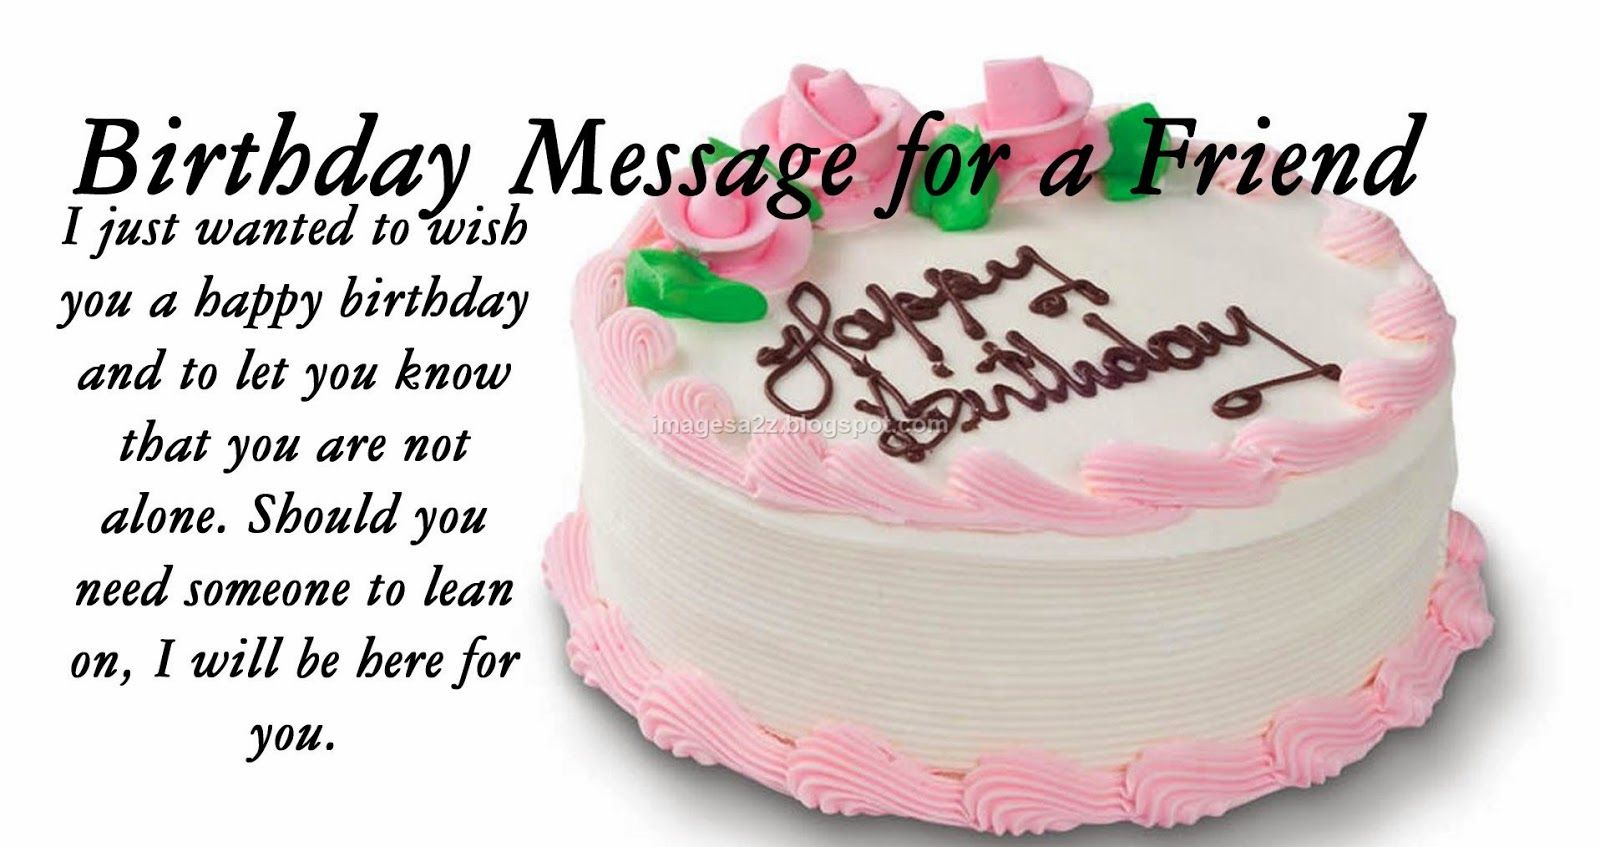 Happy Birthday Cakes With Quotes For Friend 2 Happy Birthday